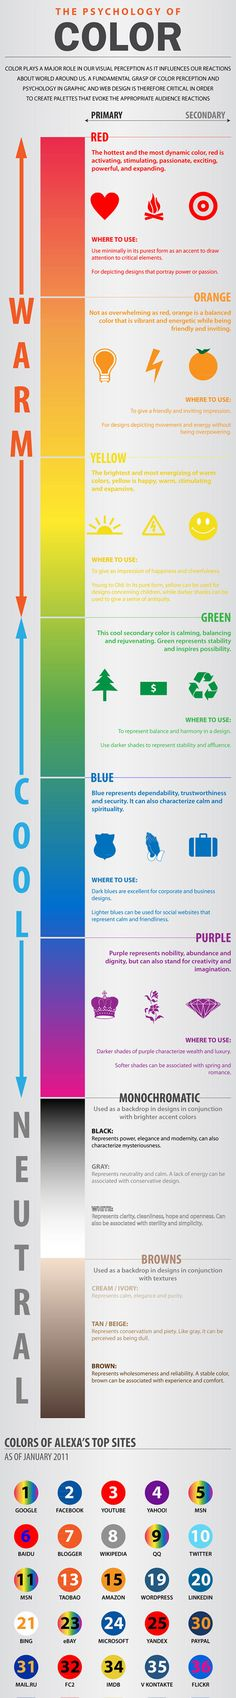 Psychology of Color - pinned by @oriol_flo